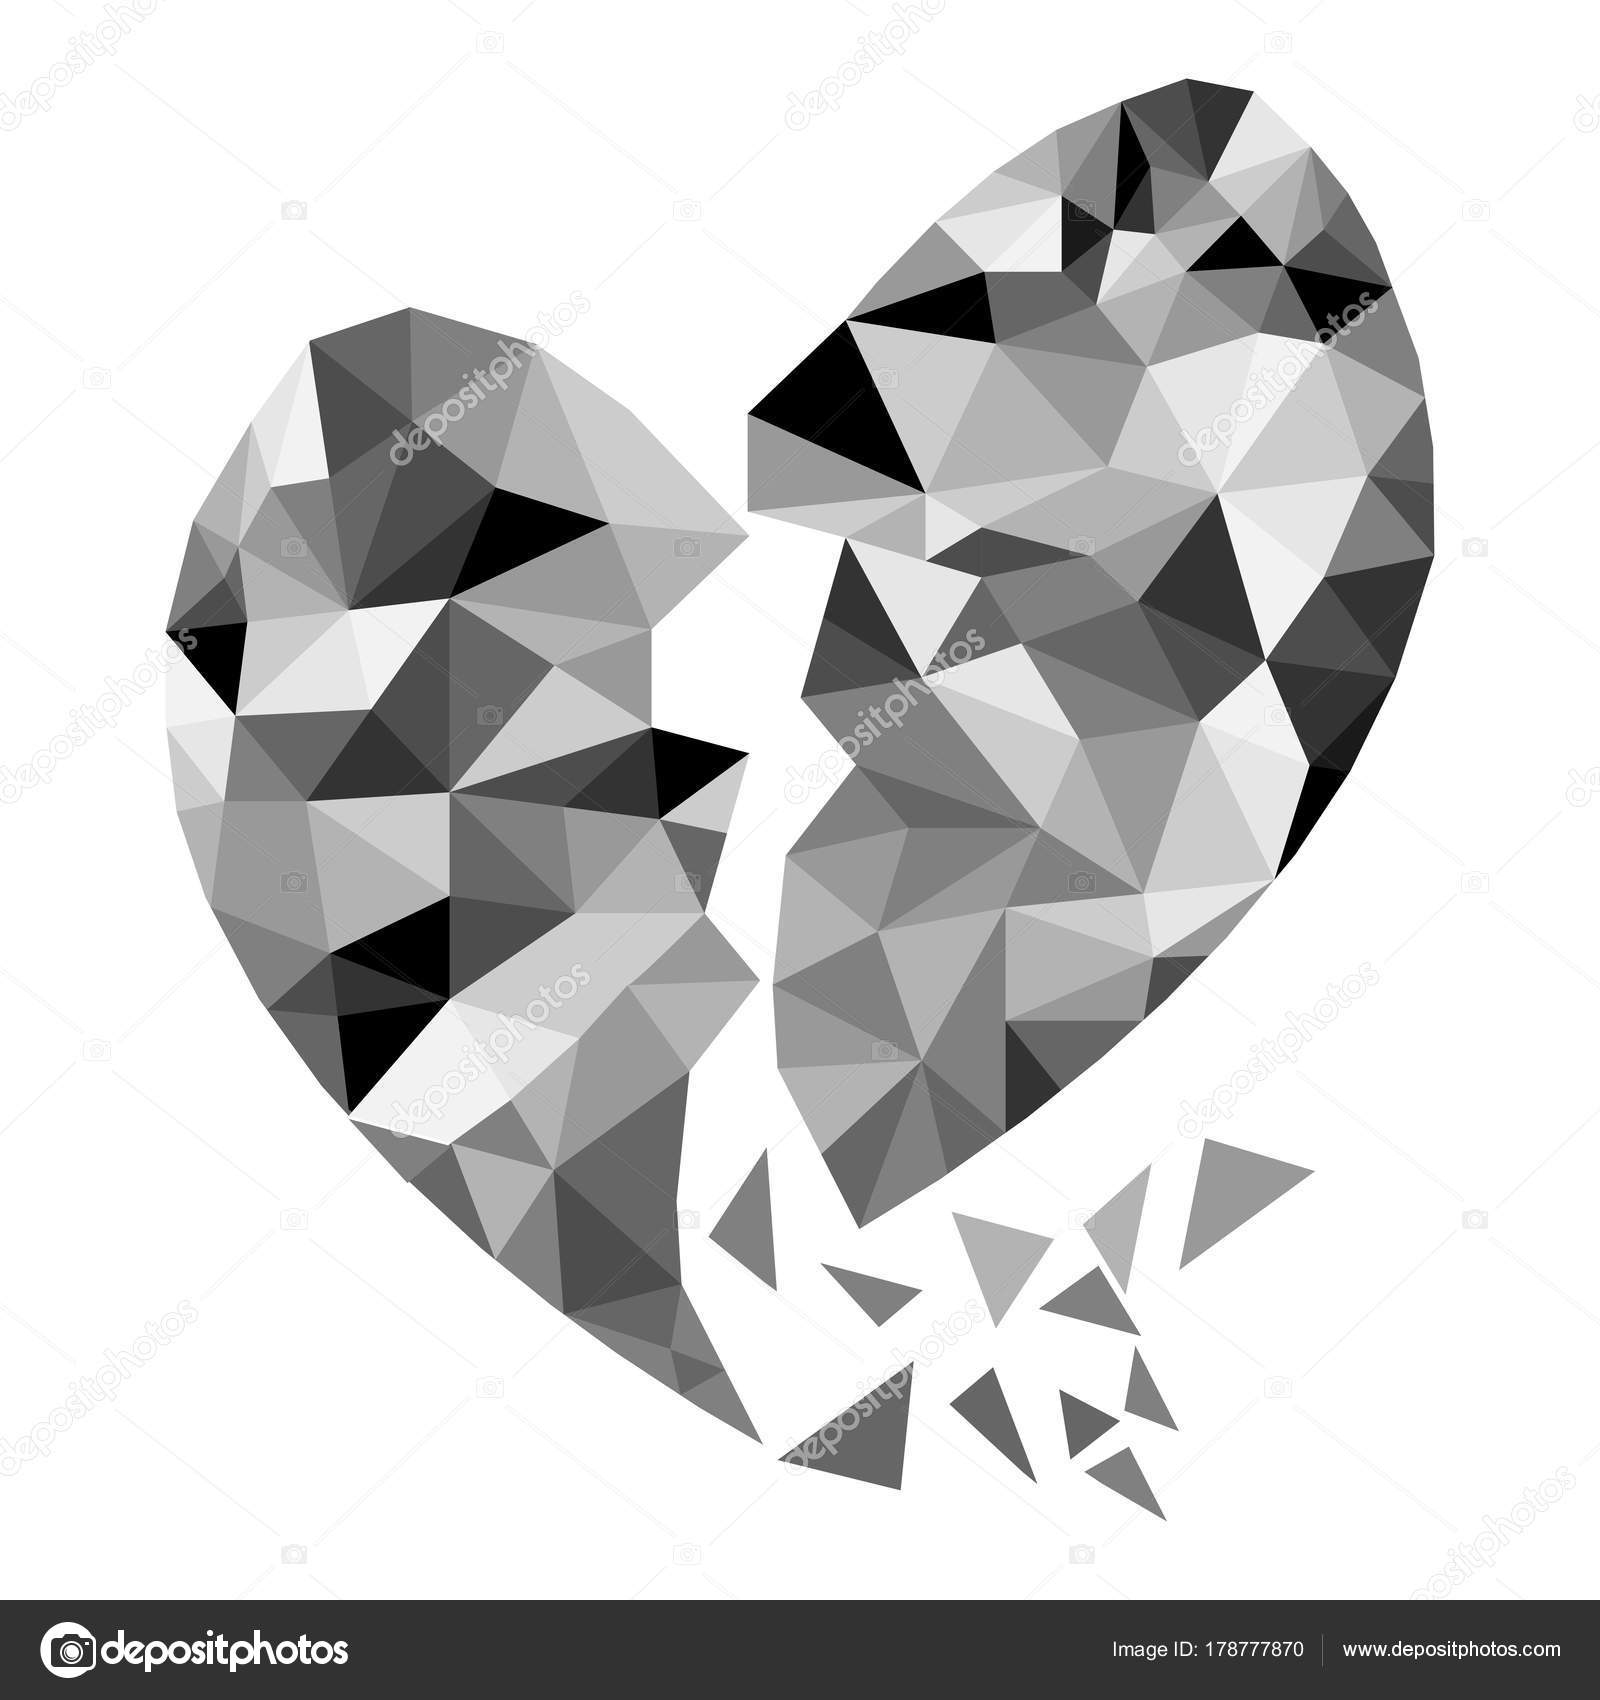 vector image diamond texture abstract stock photo seamless bigstock pattern polygon